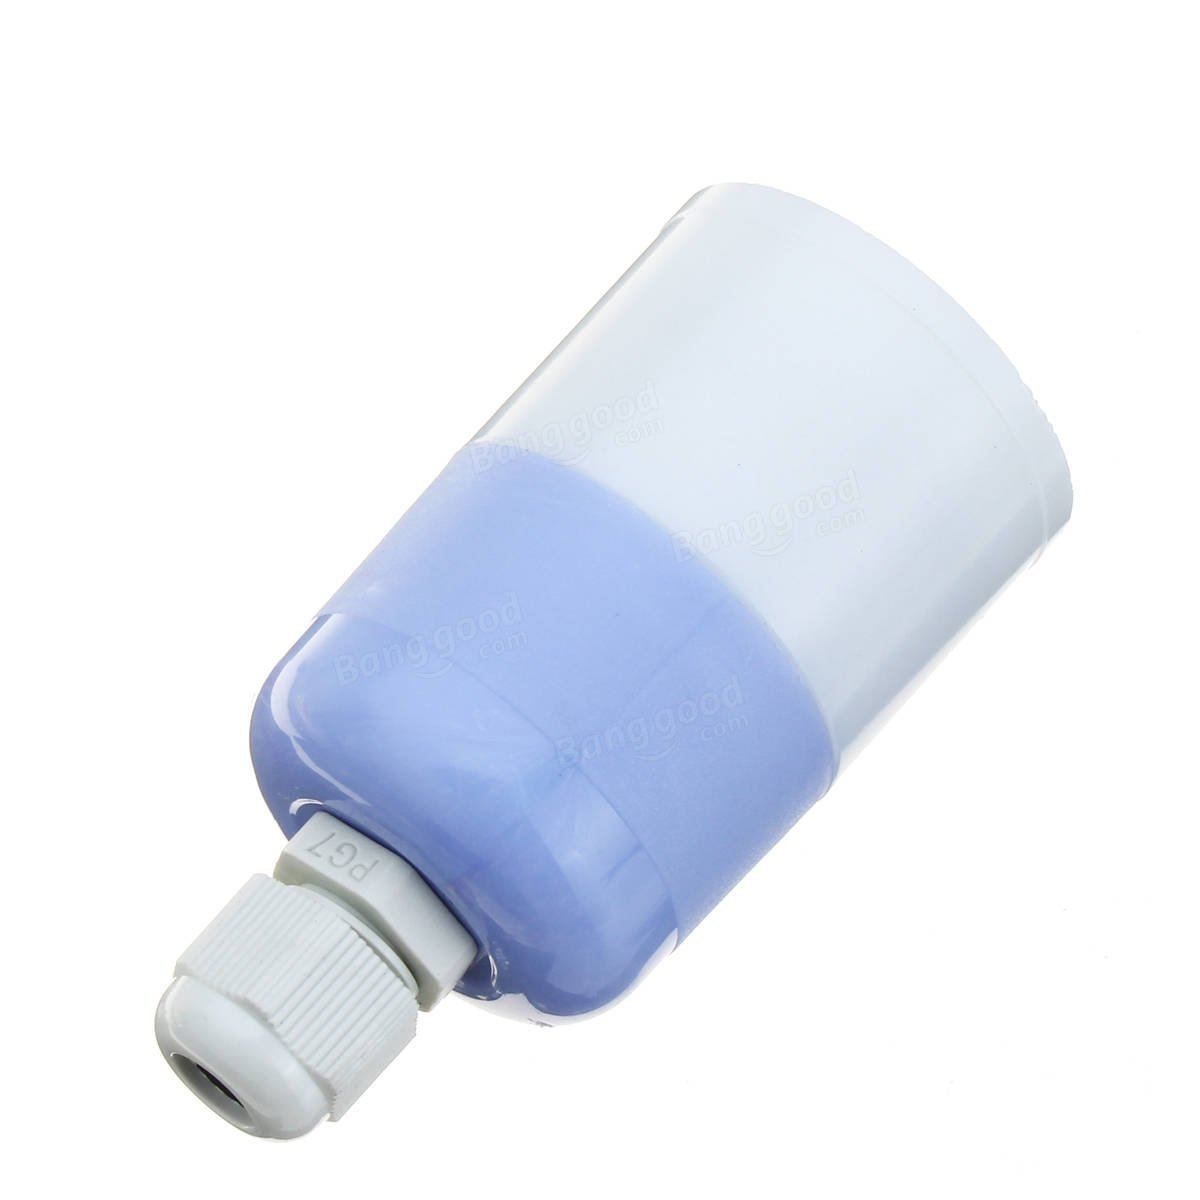 Global E27 Waterproof Fireproof Plastic Light Socket Lamp Holder Bulb Adapter Base